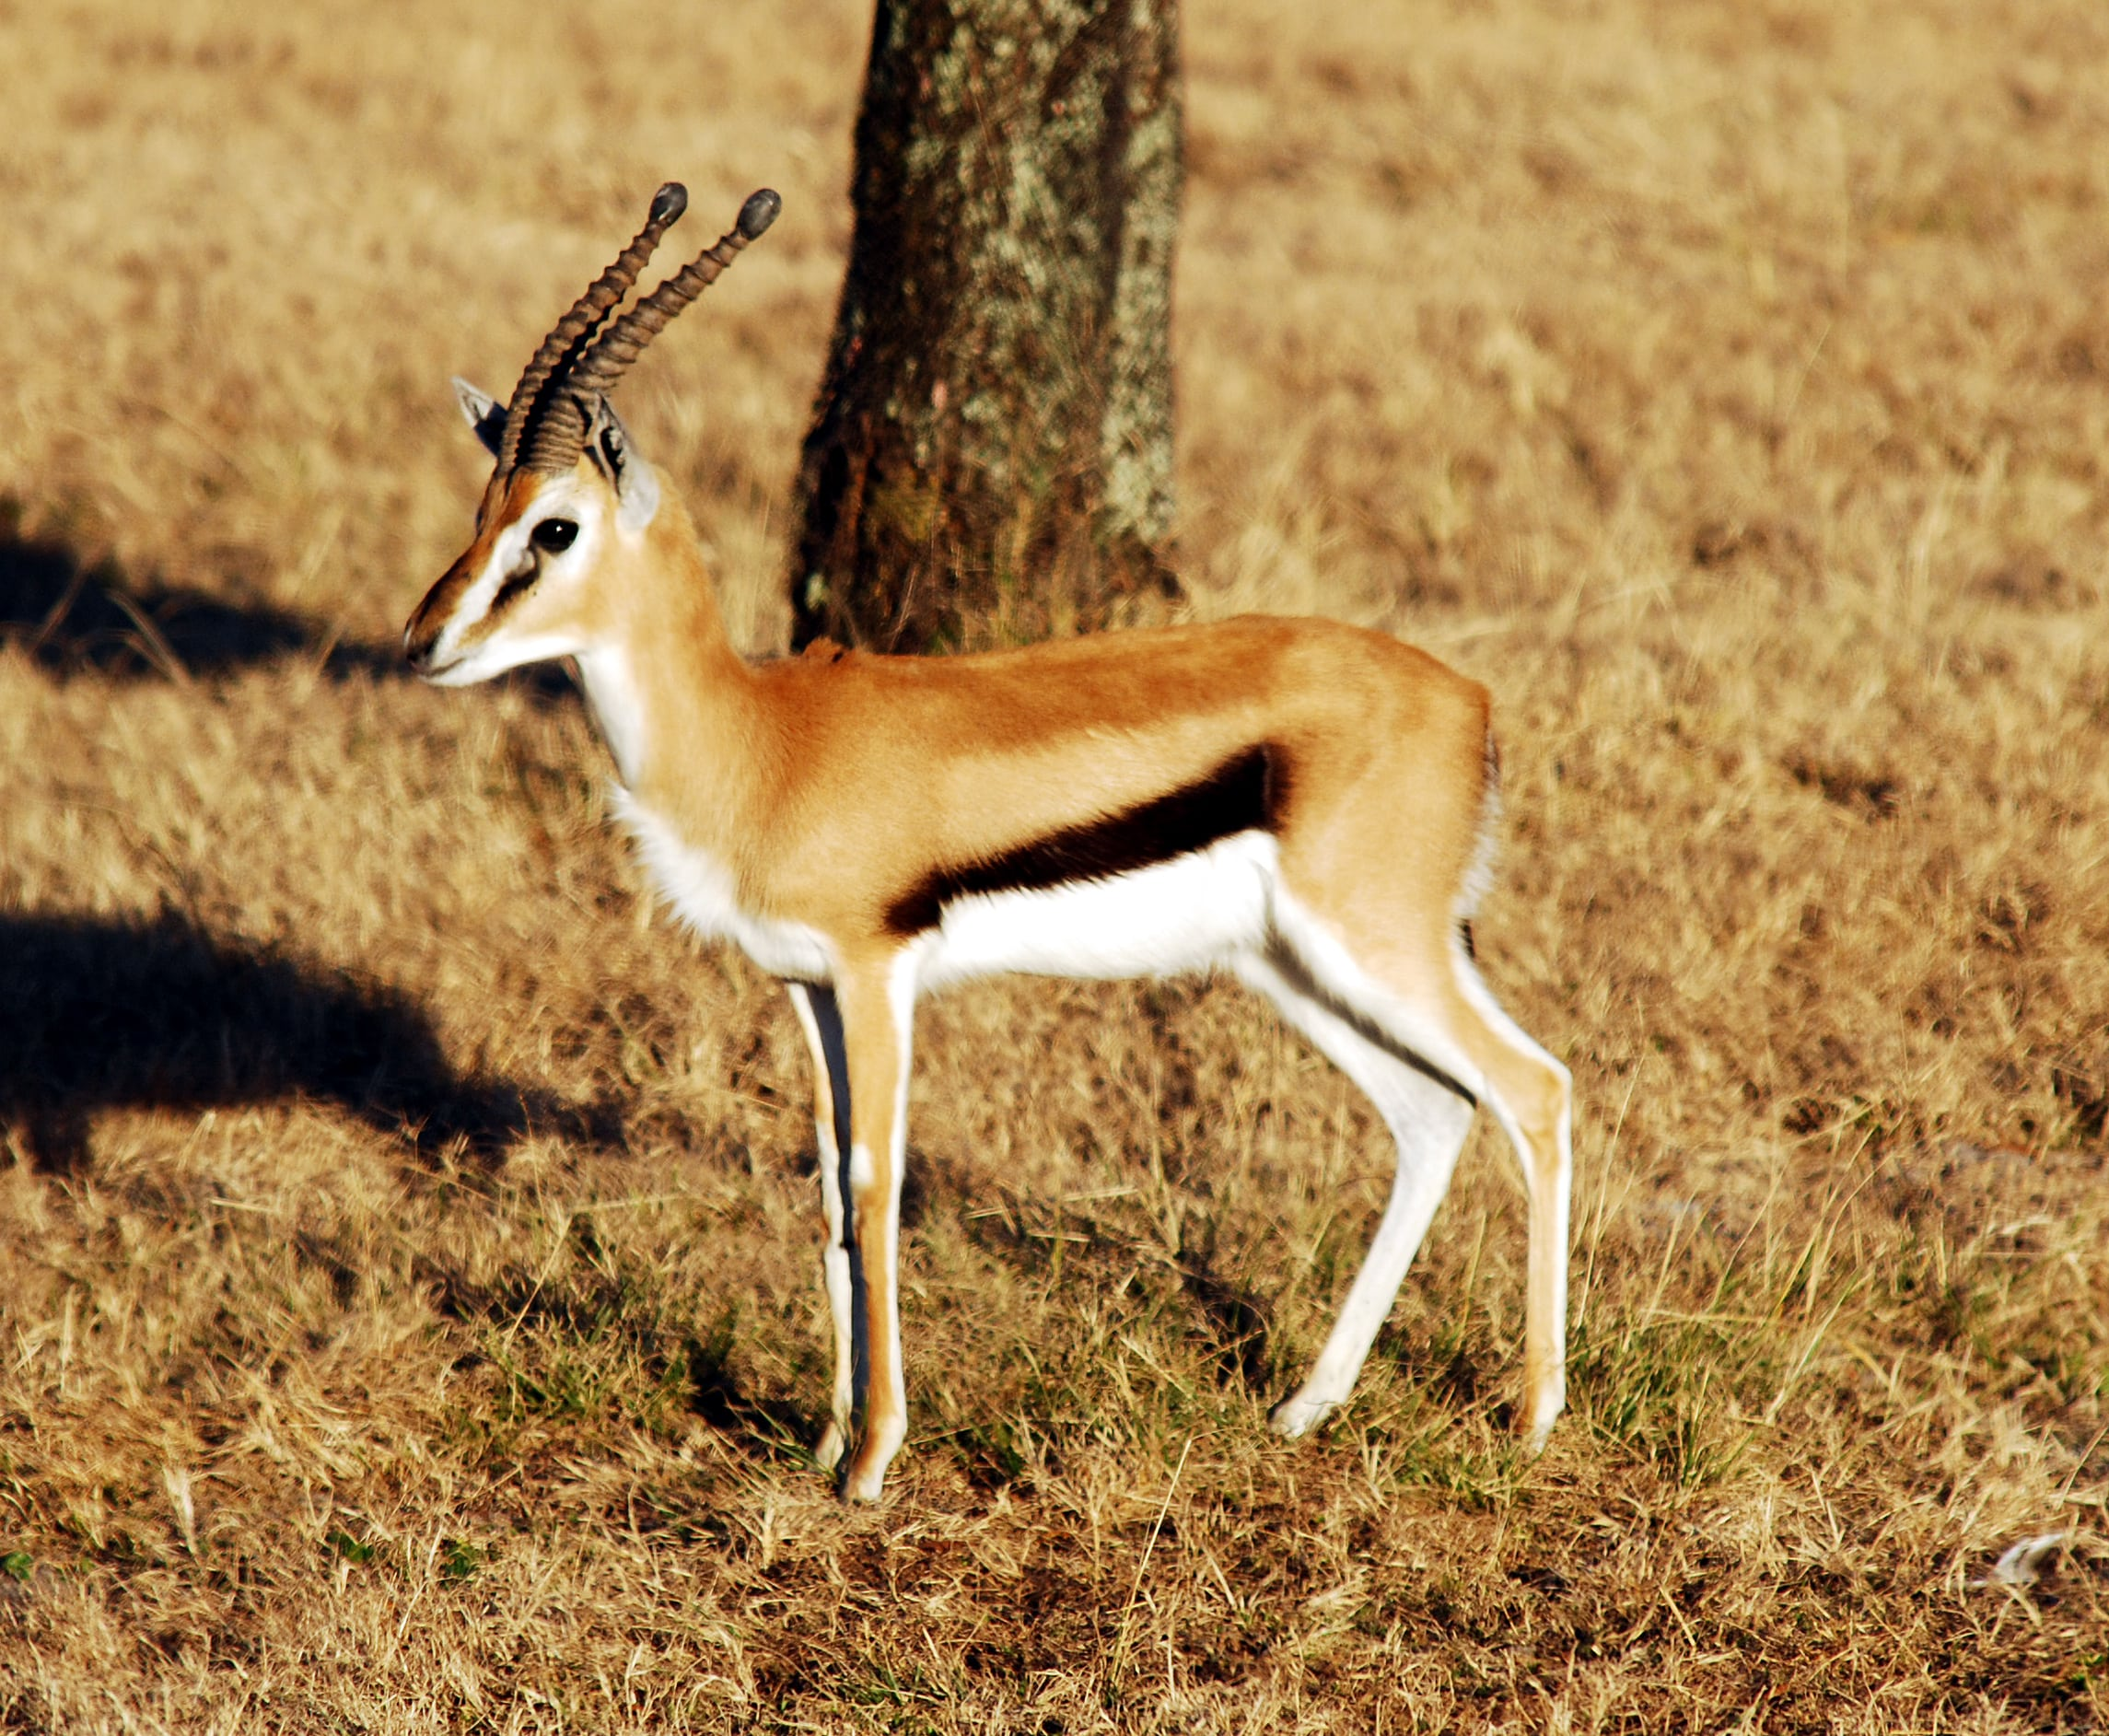 Springbok widescreen